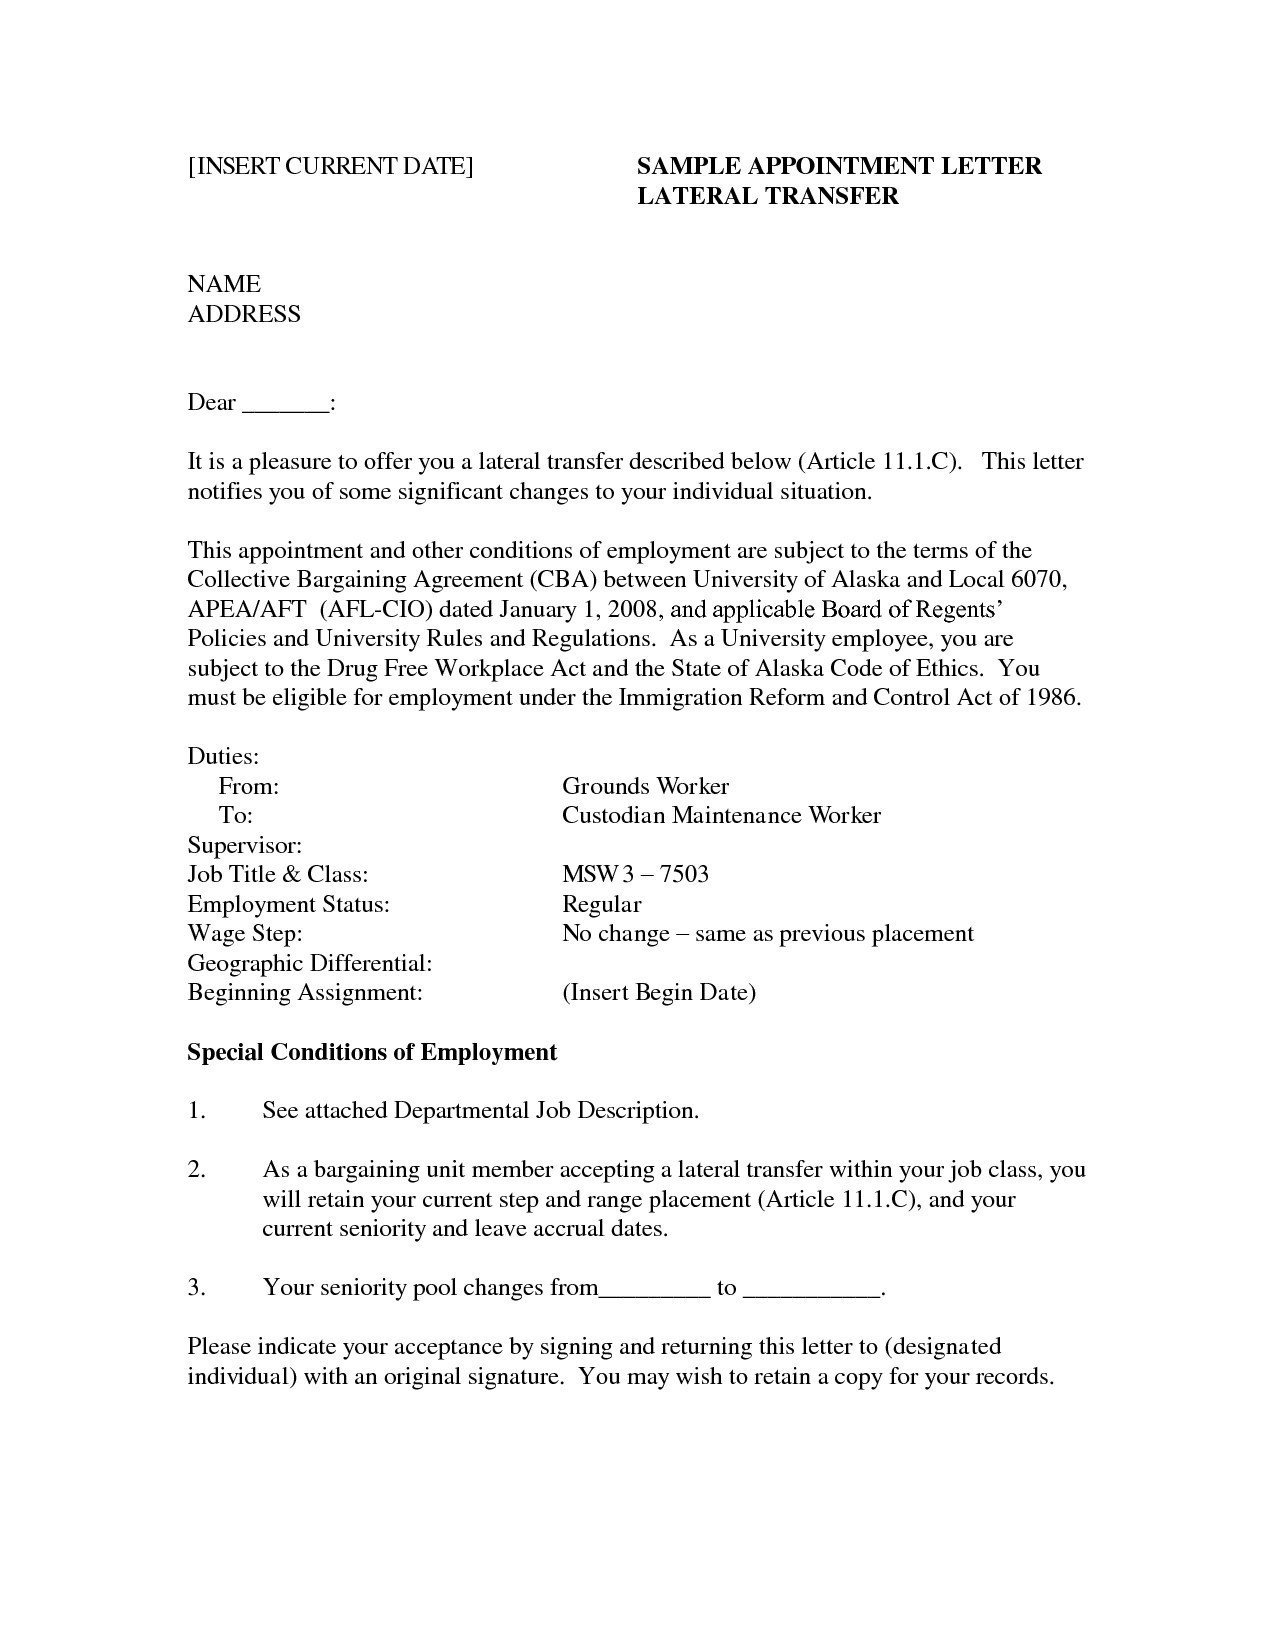 Job Application Letter Template - Sample Cover Letter for Job New Job Application Letter format